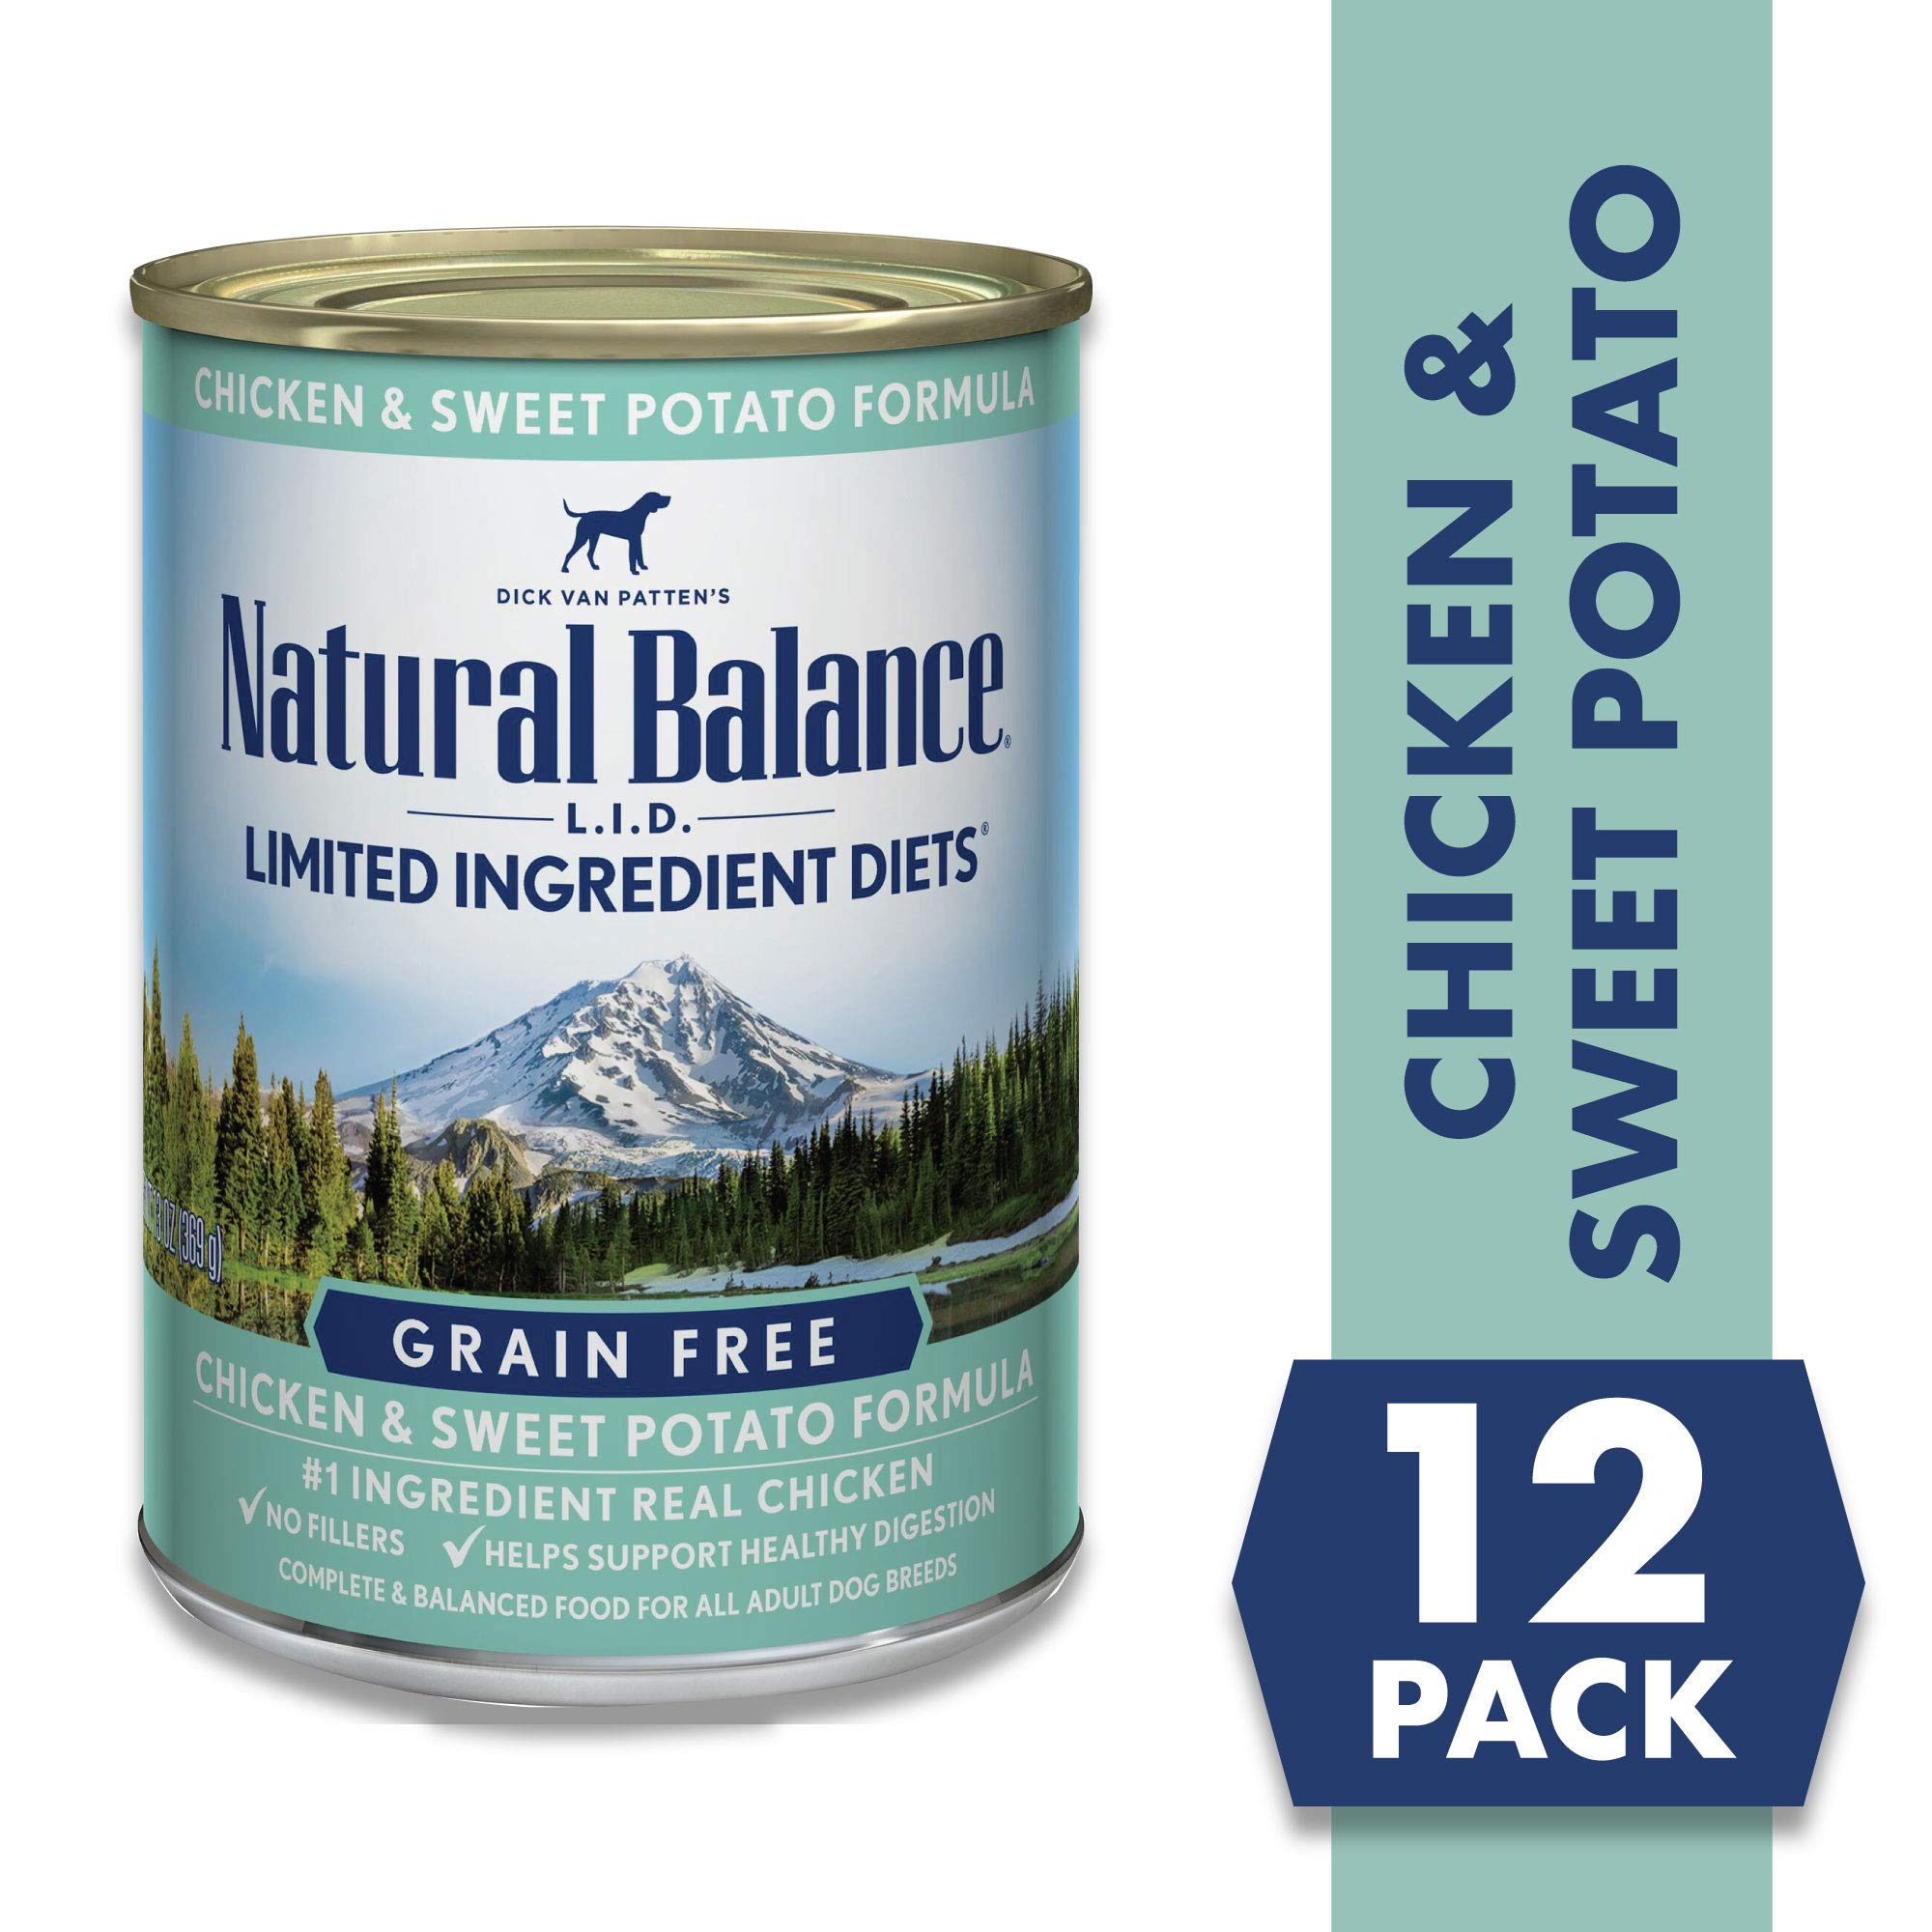 Natural Balance Limited Ingredient Diets Chicken & Sweet Potato Formula Wet Dog Food, 13 Ounces (Pack of 12), Grain Free by Natural Balance